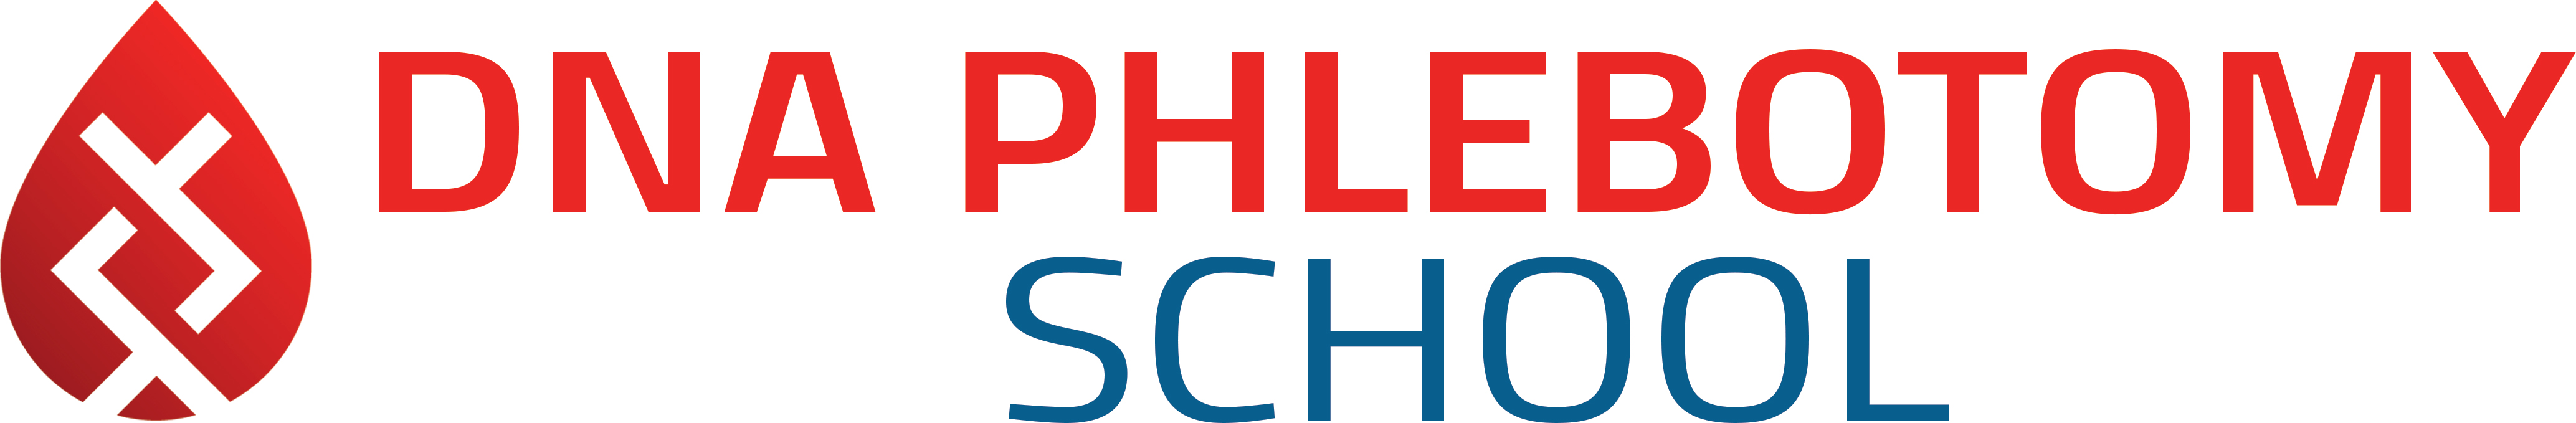 DNA Phlebotomy School